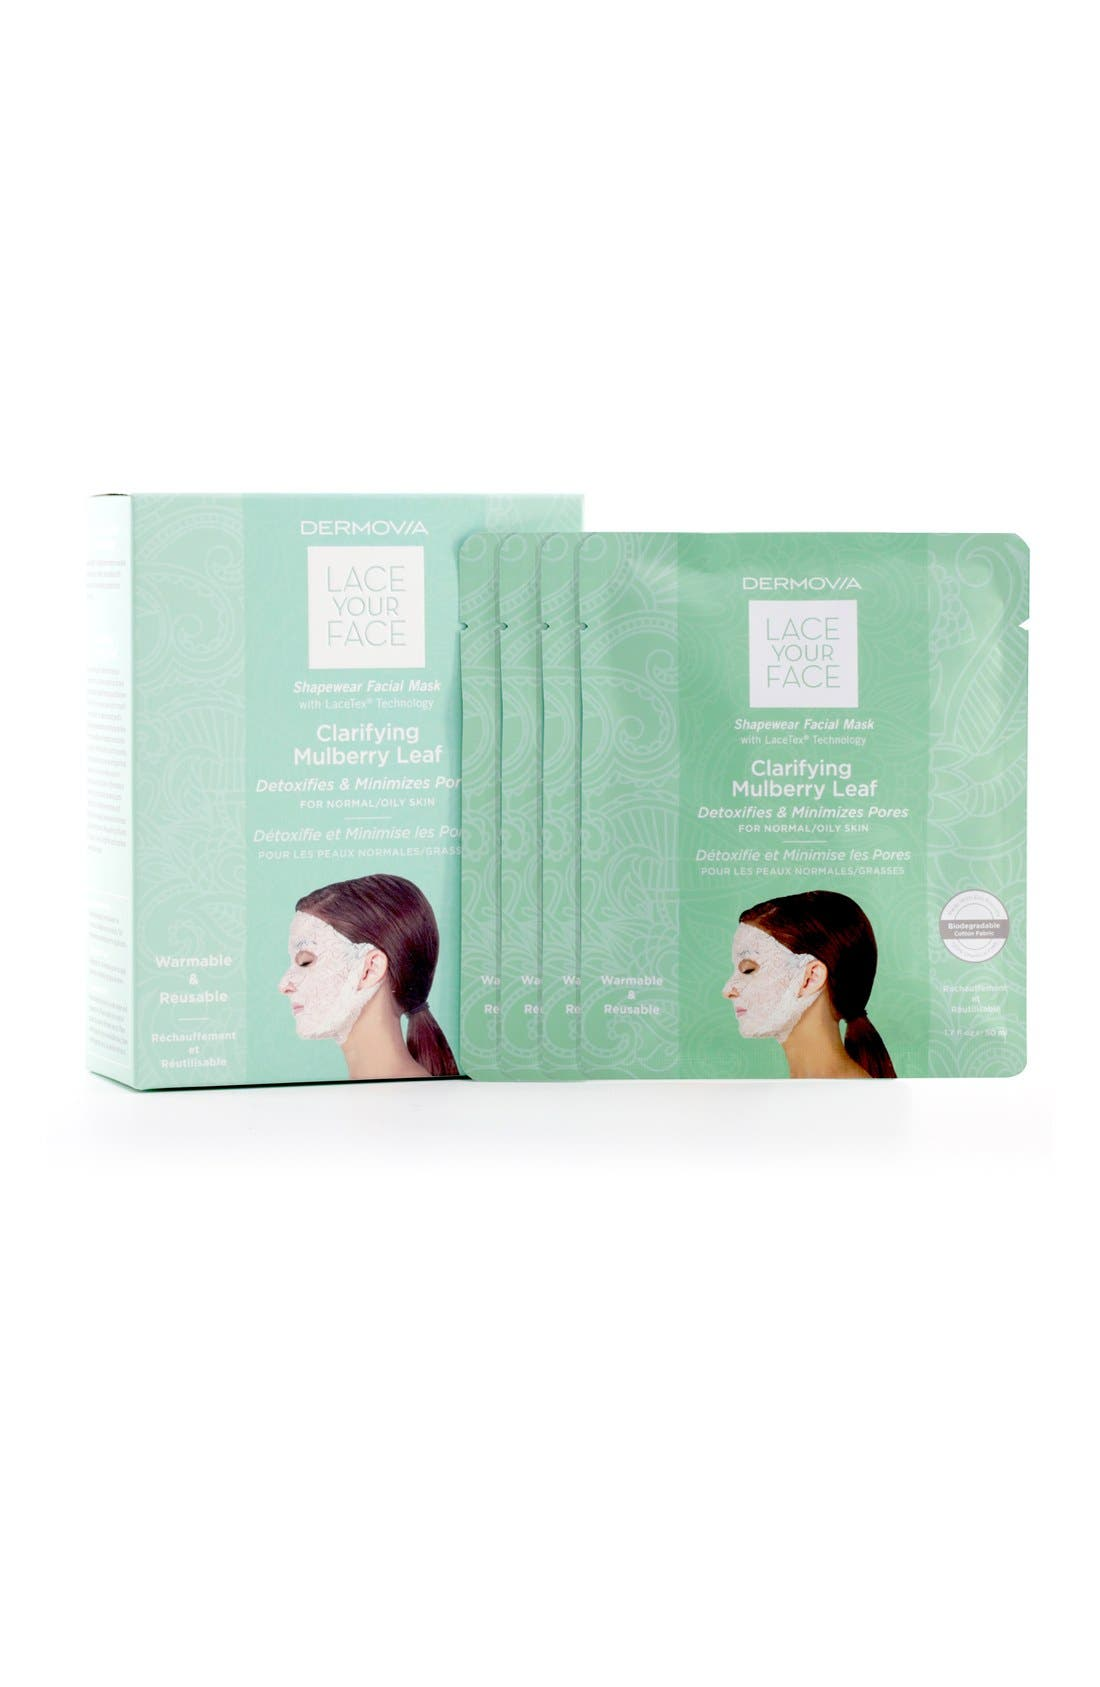 Lace Your Face Clarifying Mulberry Leaf Compression Facial Mask,                             Alternate thumbnail 3, color,                             NONE